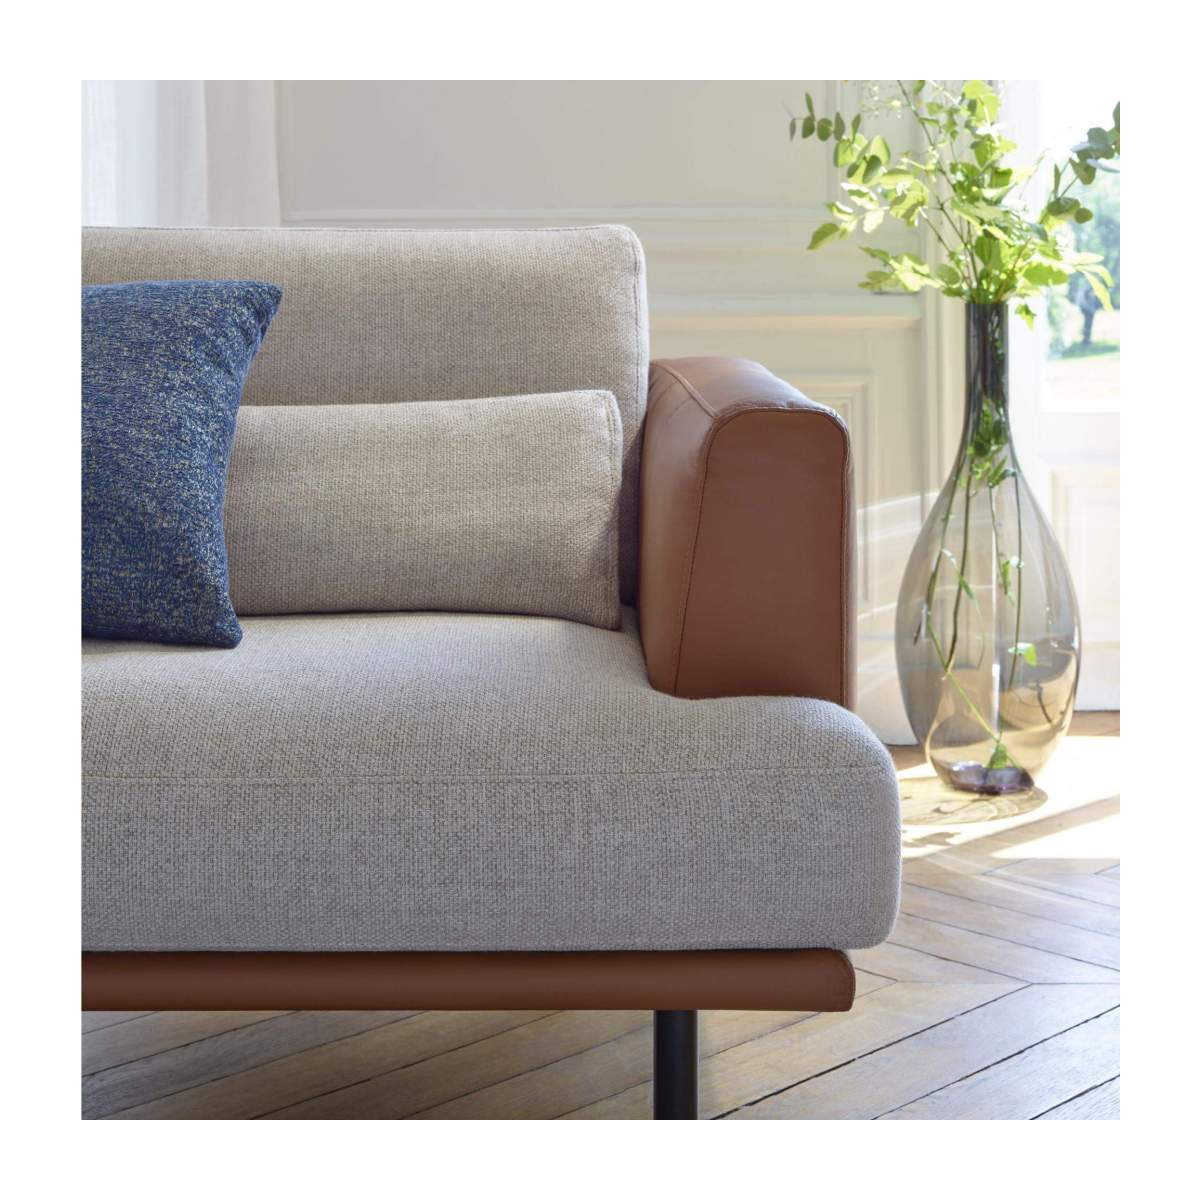 2 seater sofa in Lecce fabric, slade grey with base in brown leather n°7